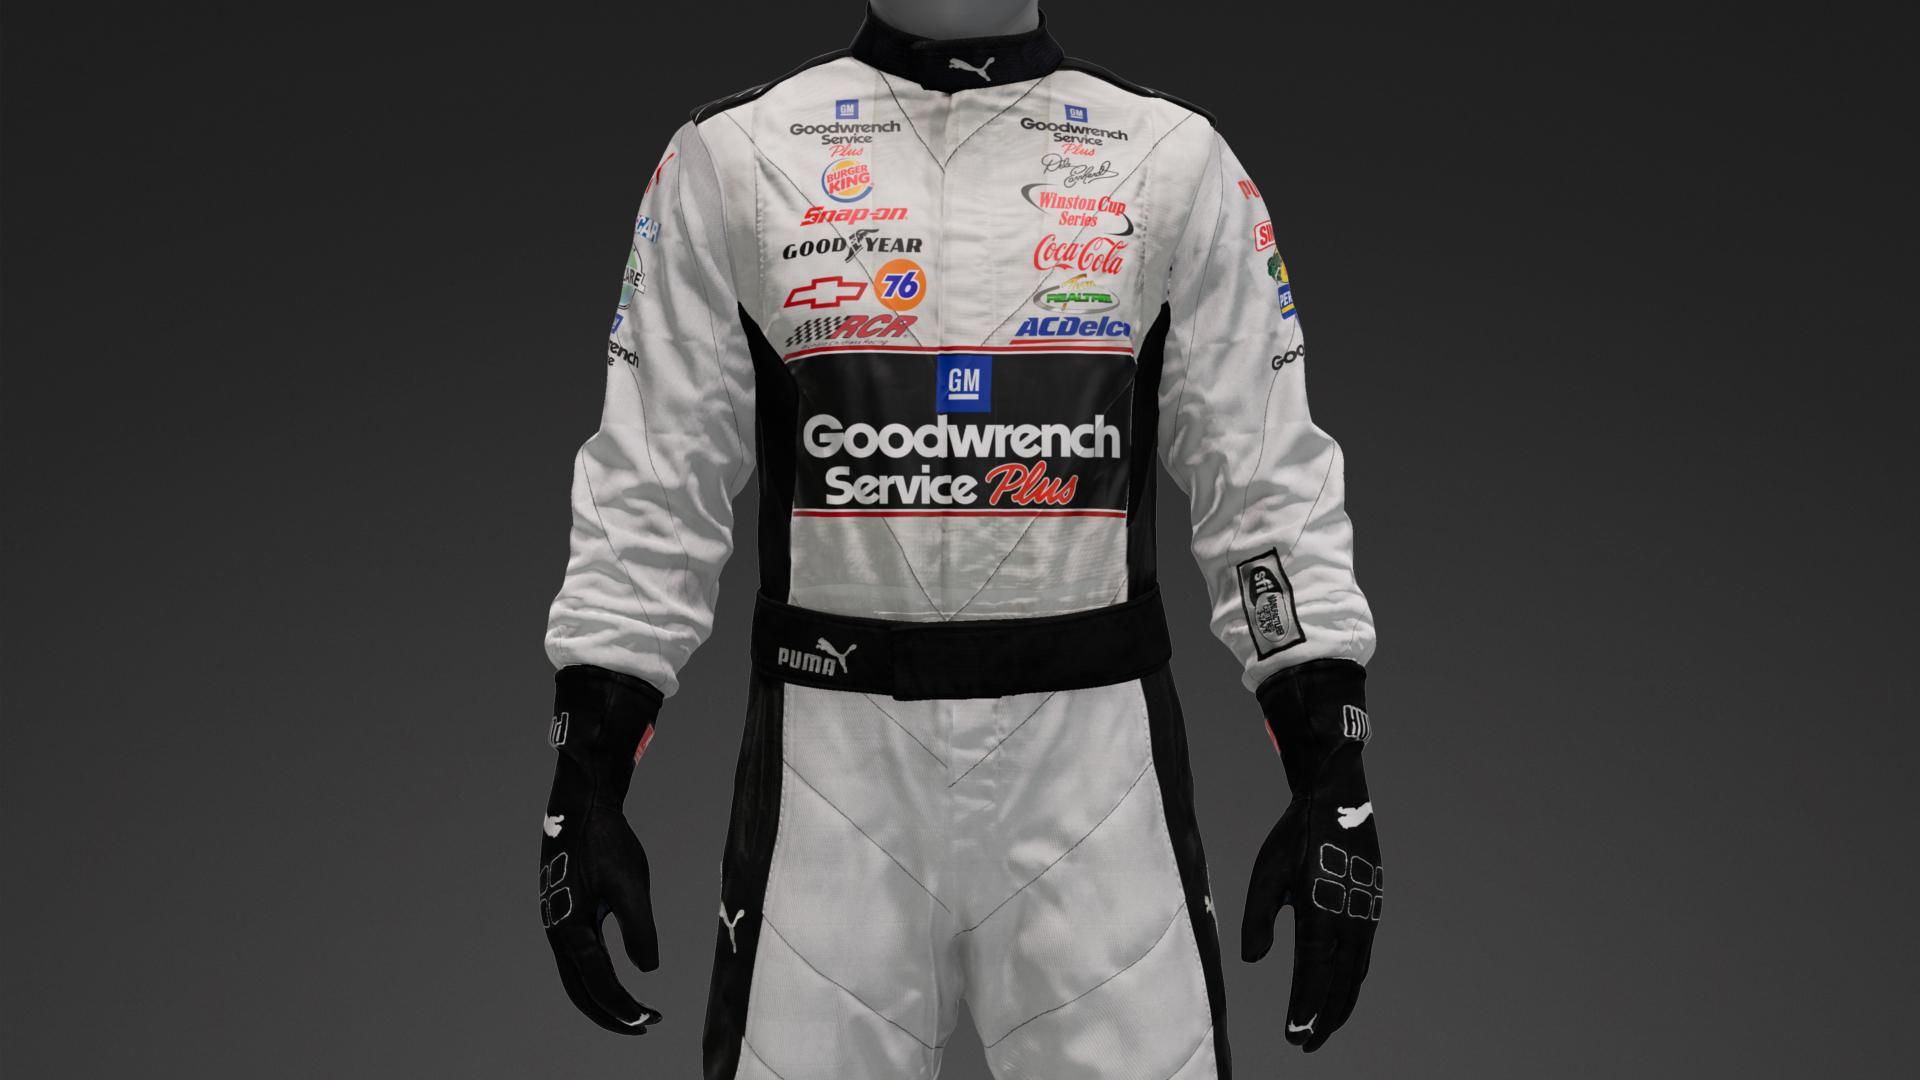 Goodwrench Livery Dale By Earnhardt Jeremy6strings Gm Suit oCexBd